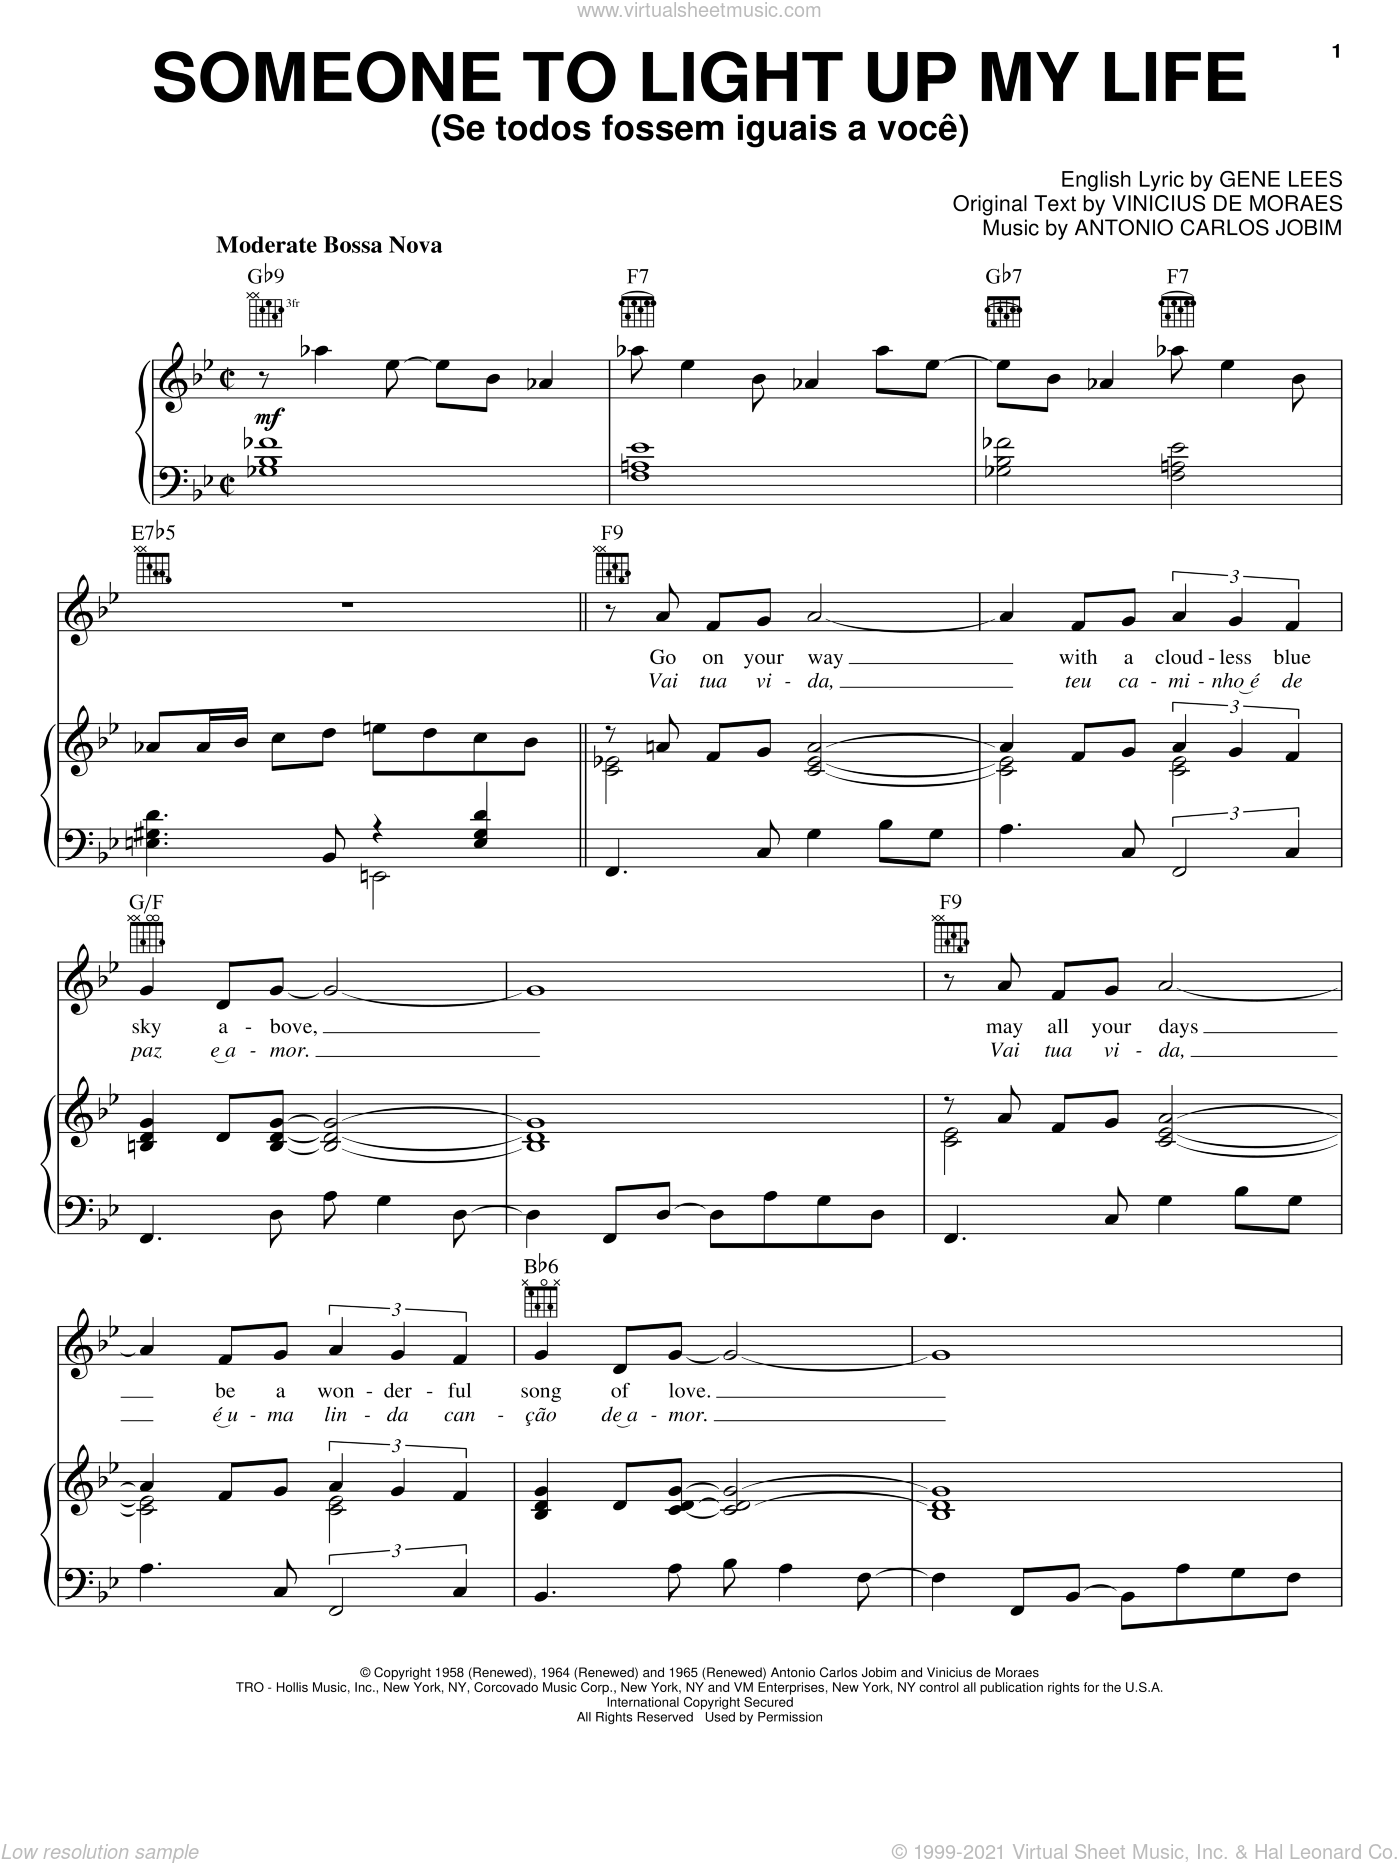 Someone To Light Up My Life (Se Todos Fossem Iguais A Voce) sheet music for voice, piano or guitar by Vinicius de Moraes